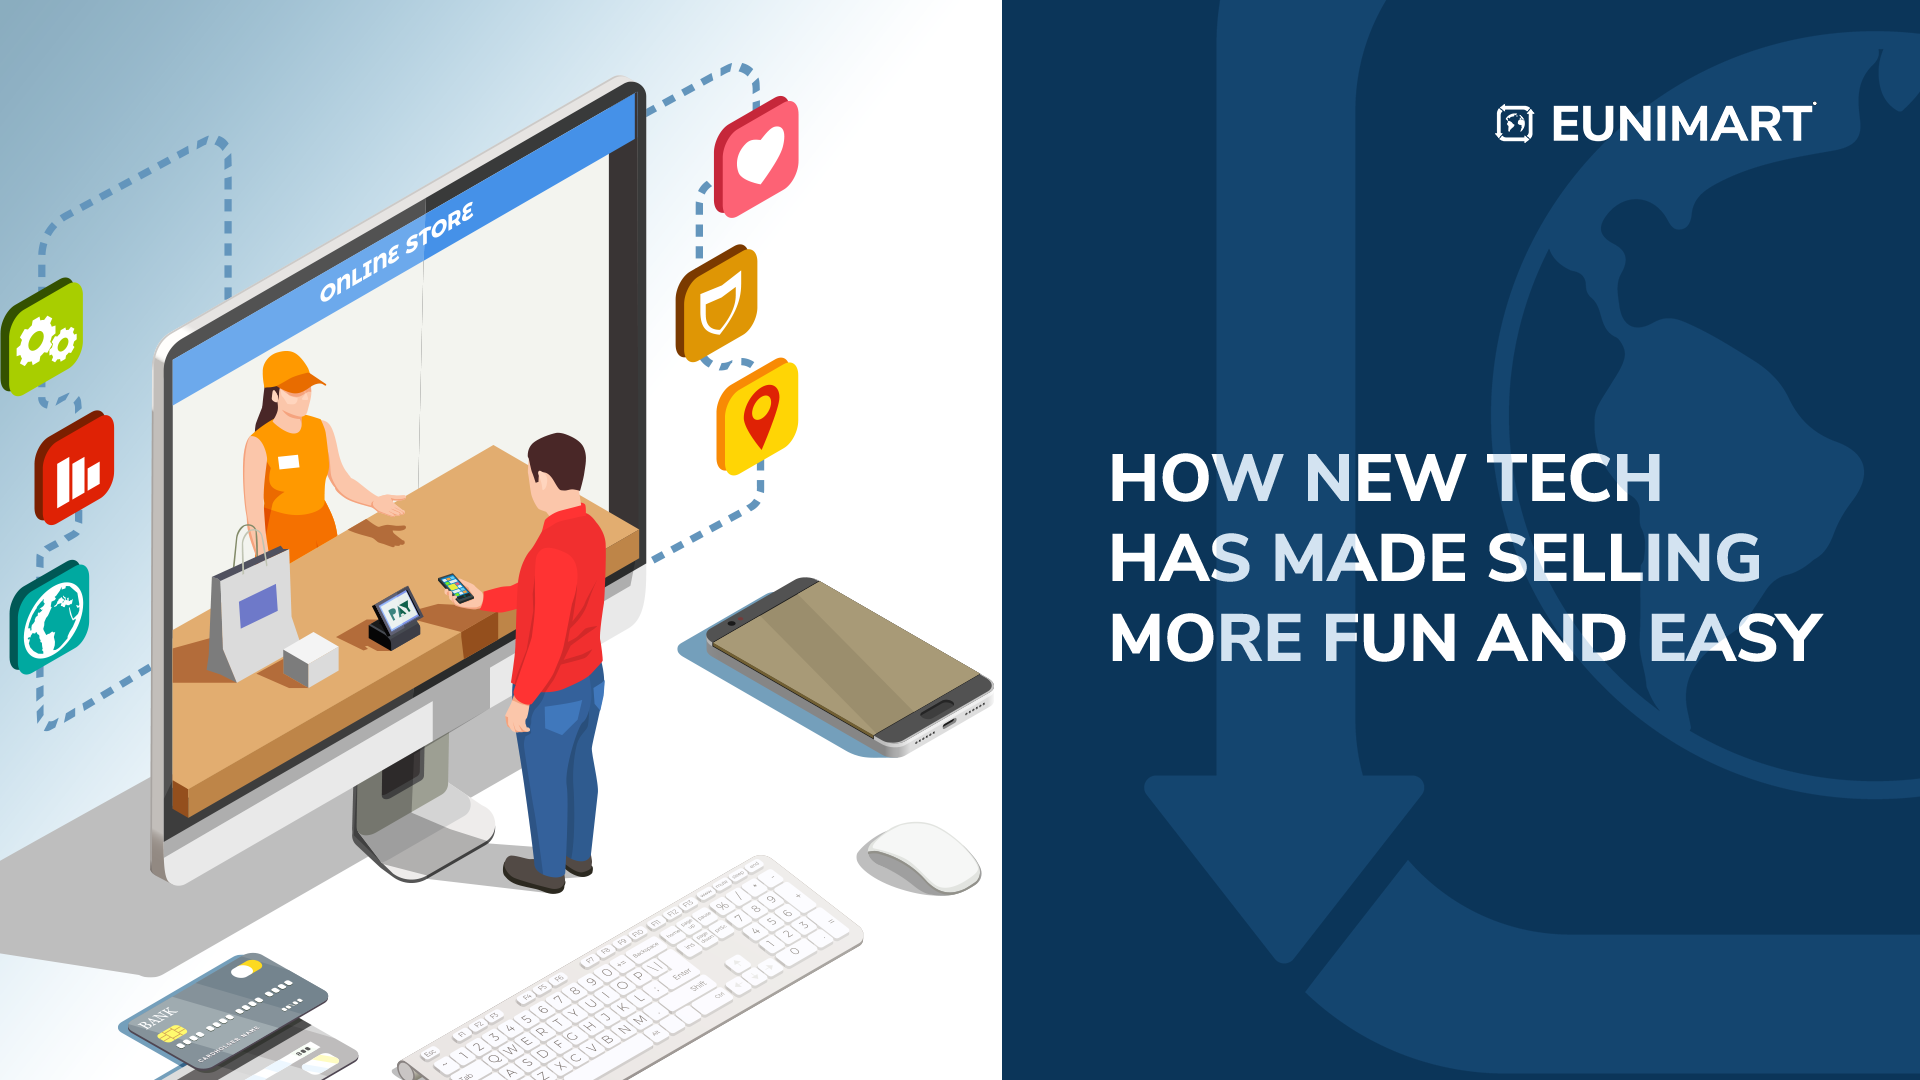 How new tech has made selling more fun and easy